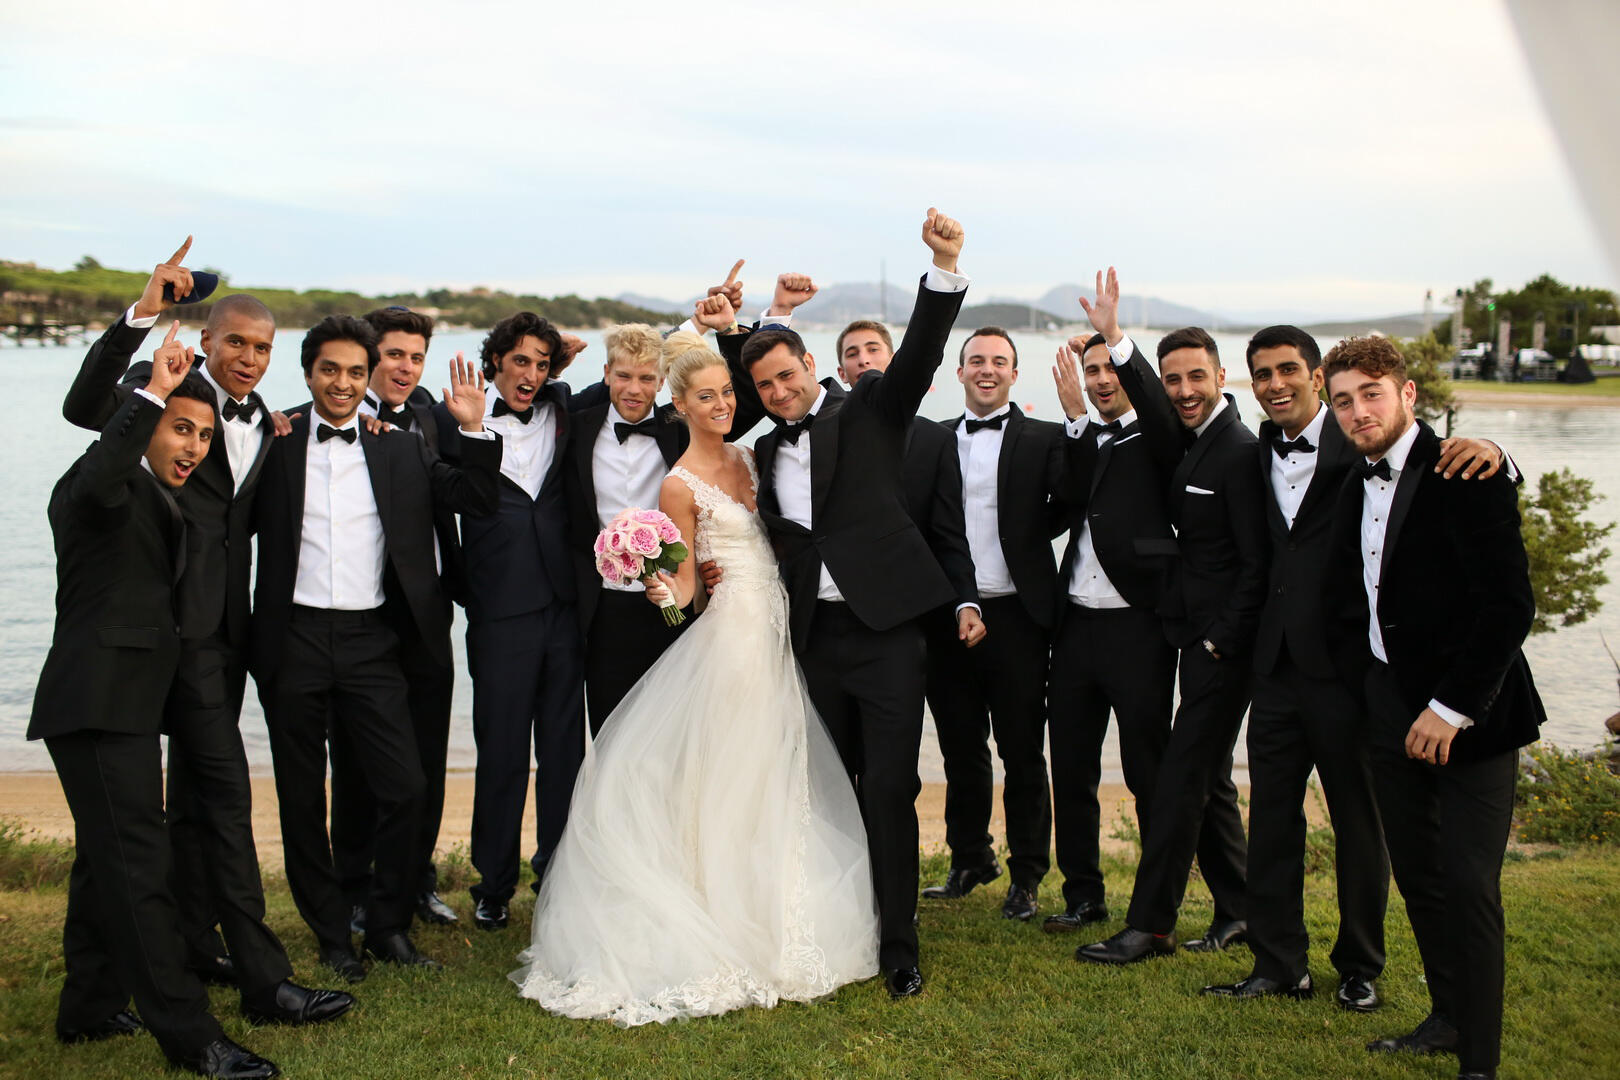 hotel cala di volpe wedding francisflowersit